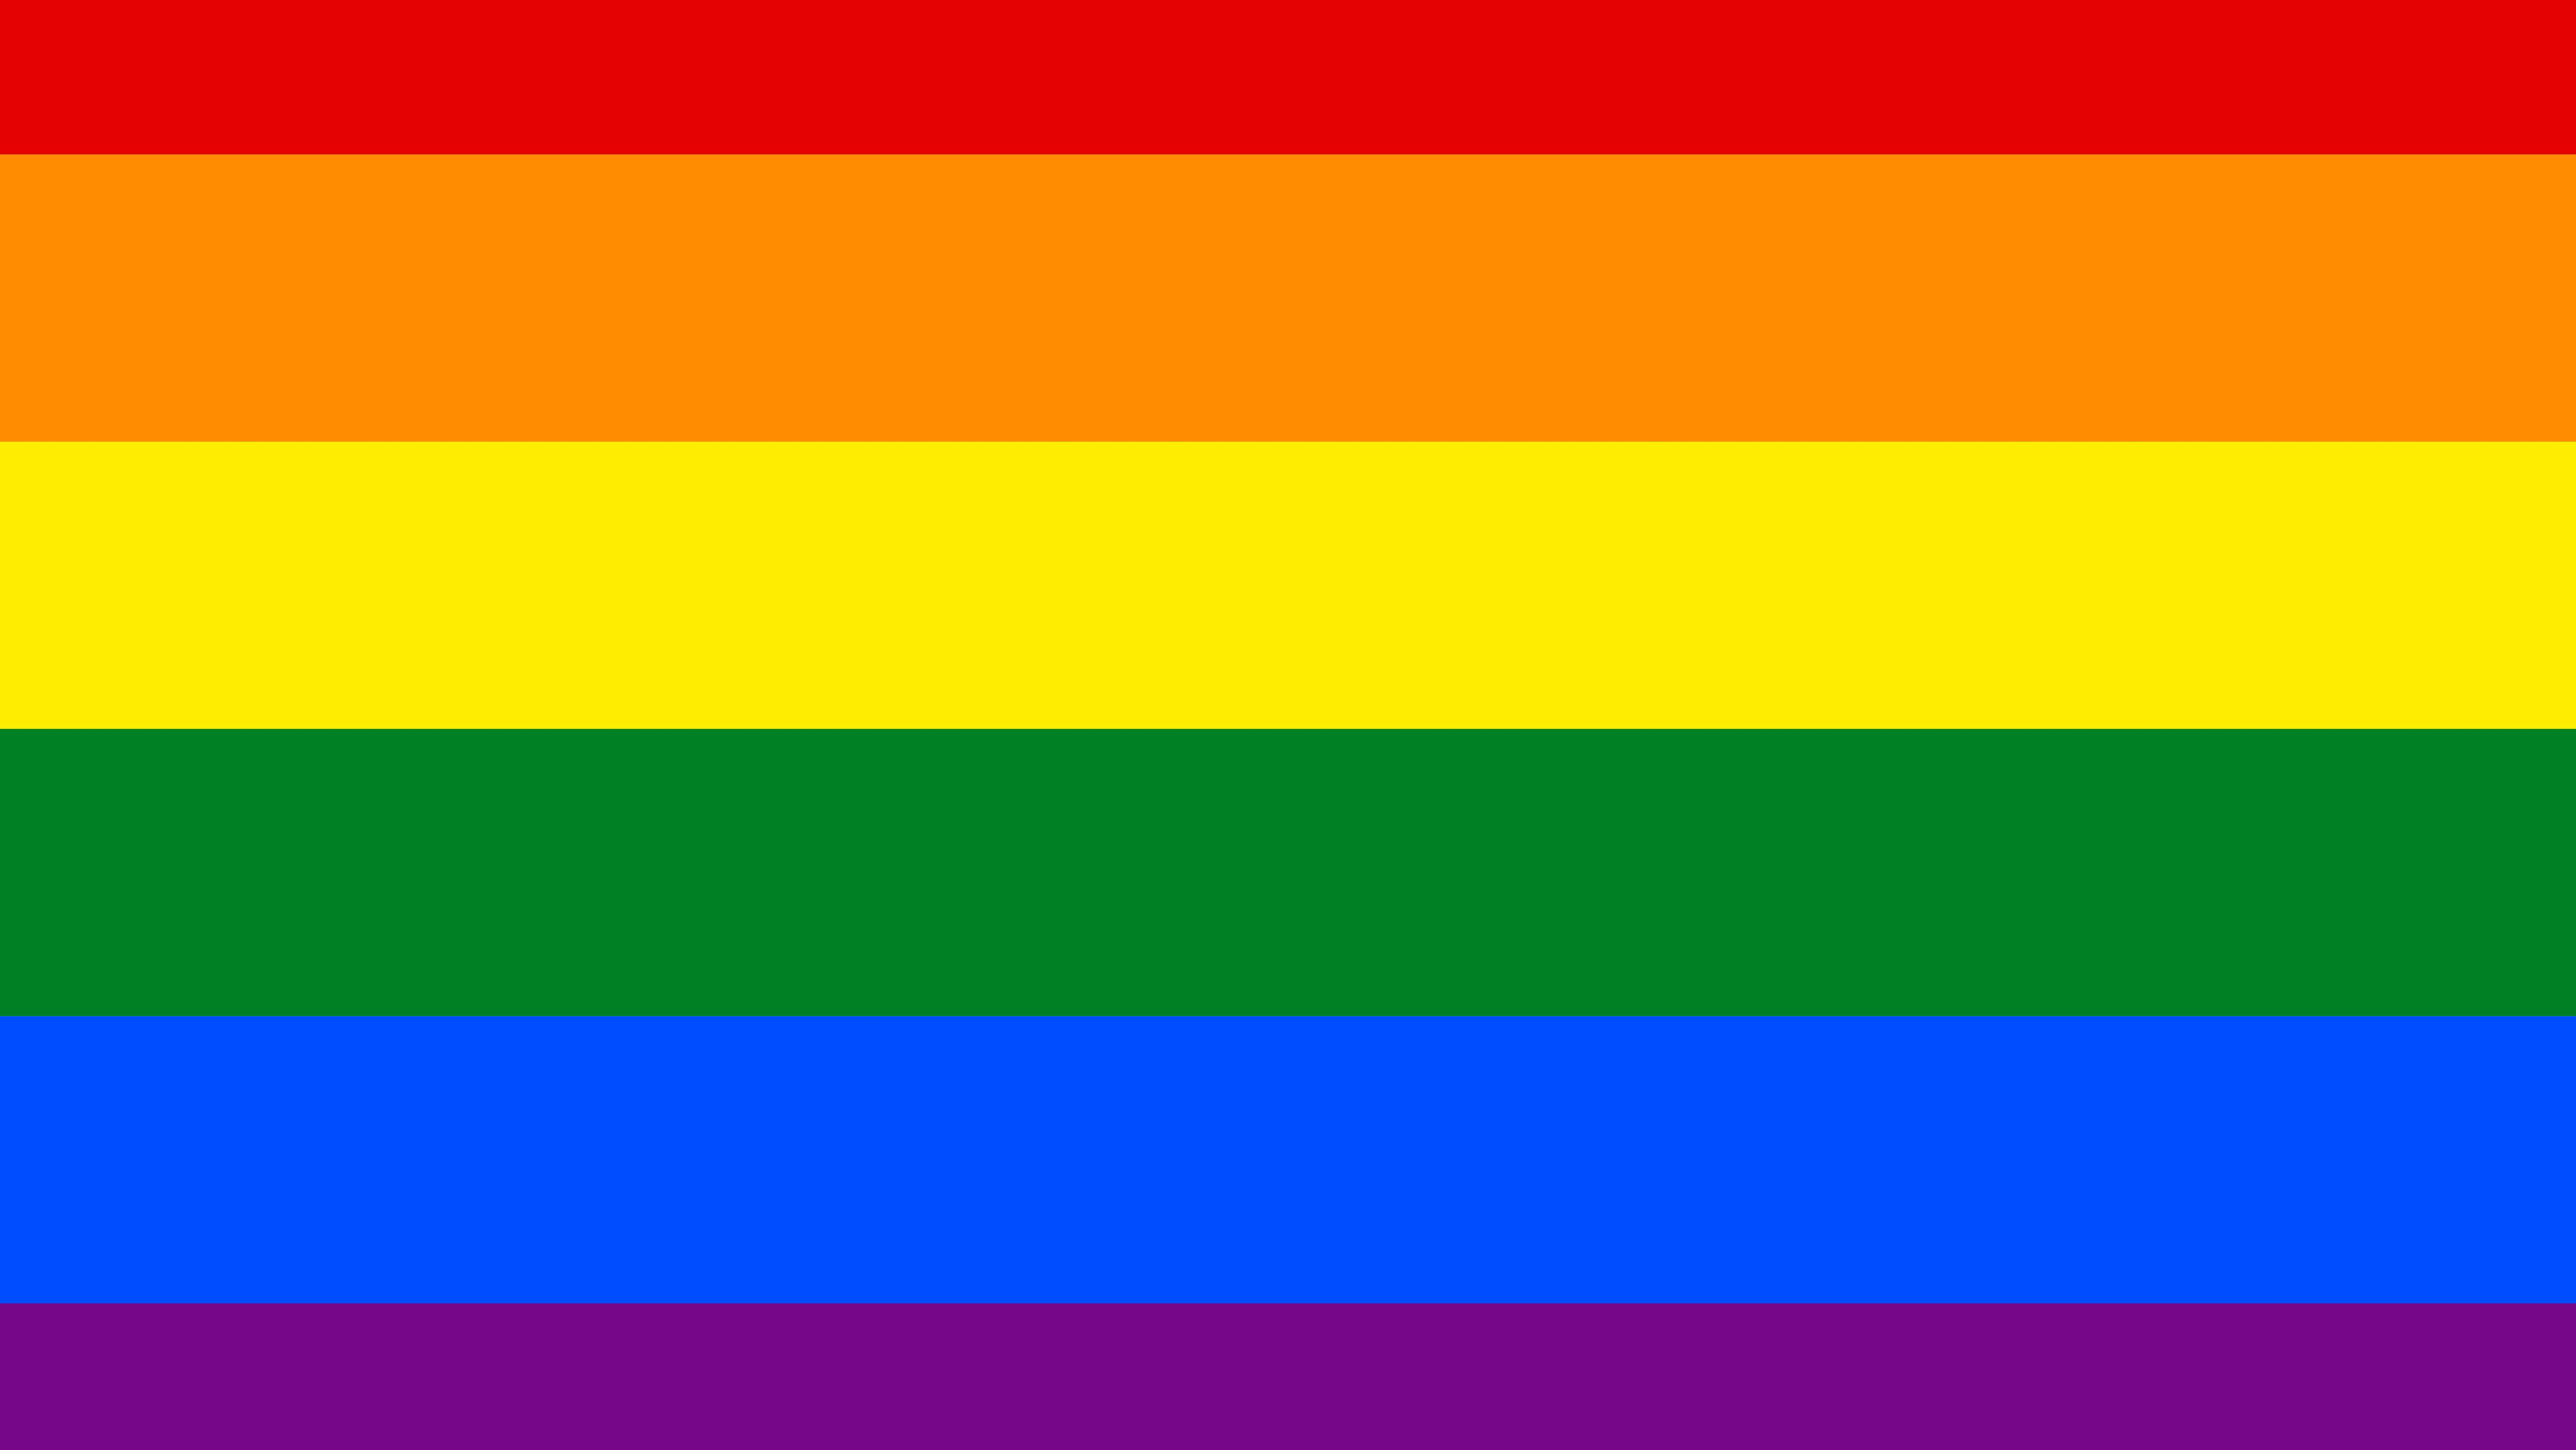 There are many versions of the rainbow flag, but it is first and foremost associated with the LGBT community.